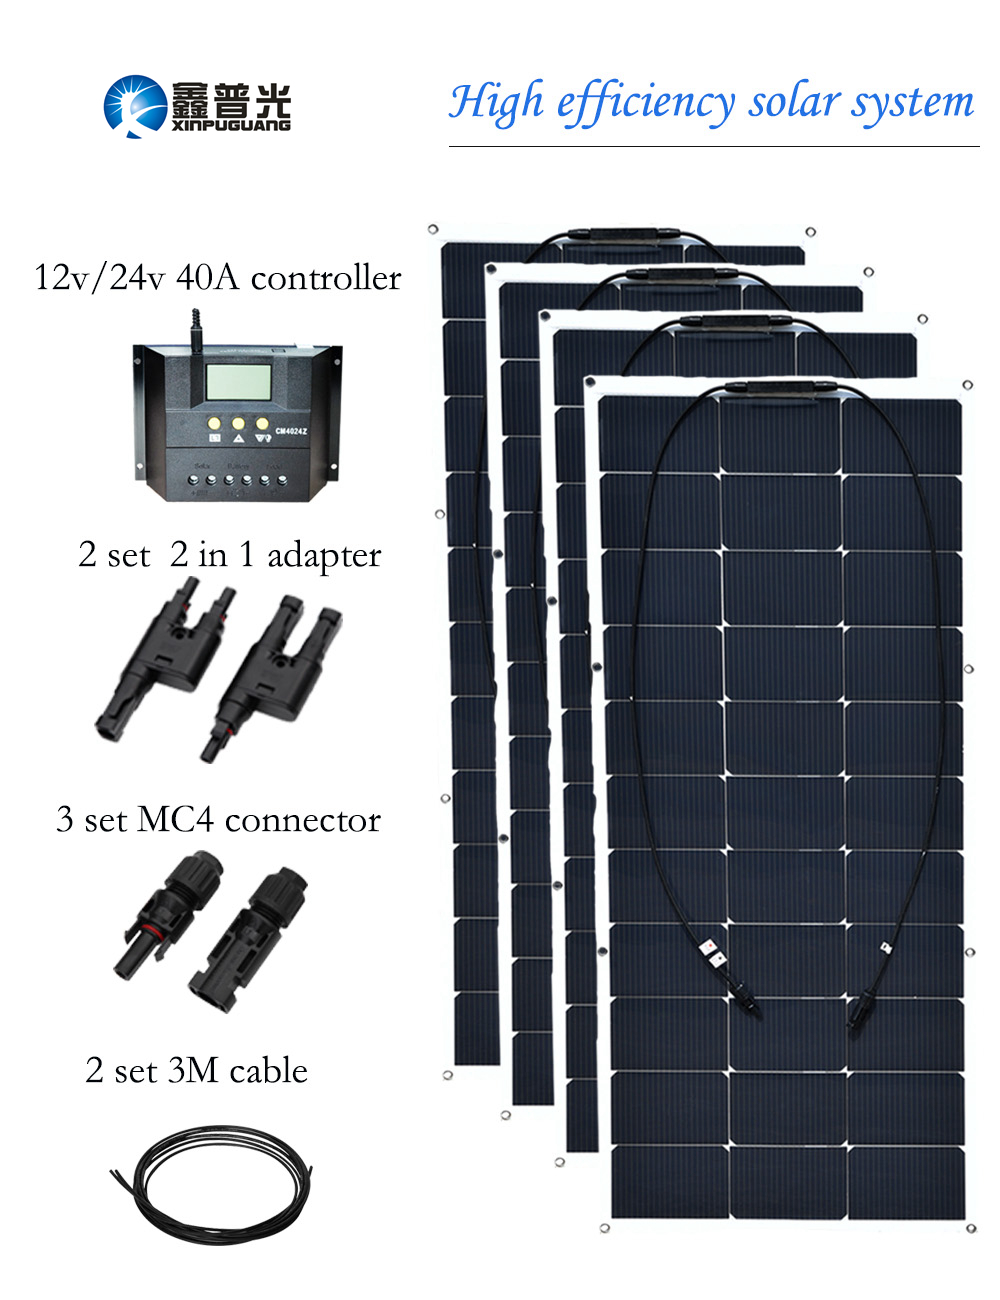 400w 16v New Flexible Solar Panel Cell 12v 24v 40A Controller 2 in 1 Adapter MC4 Connector Cable for 12v Battery RV Yacht Boat